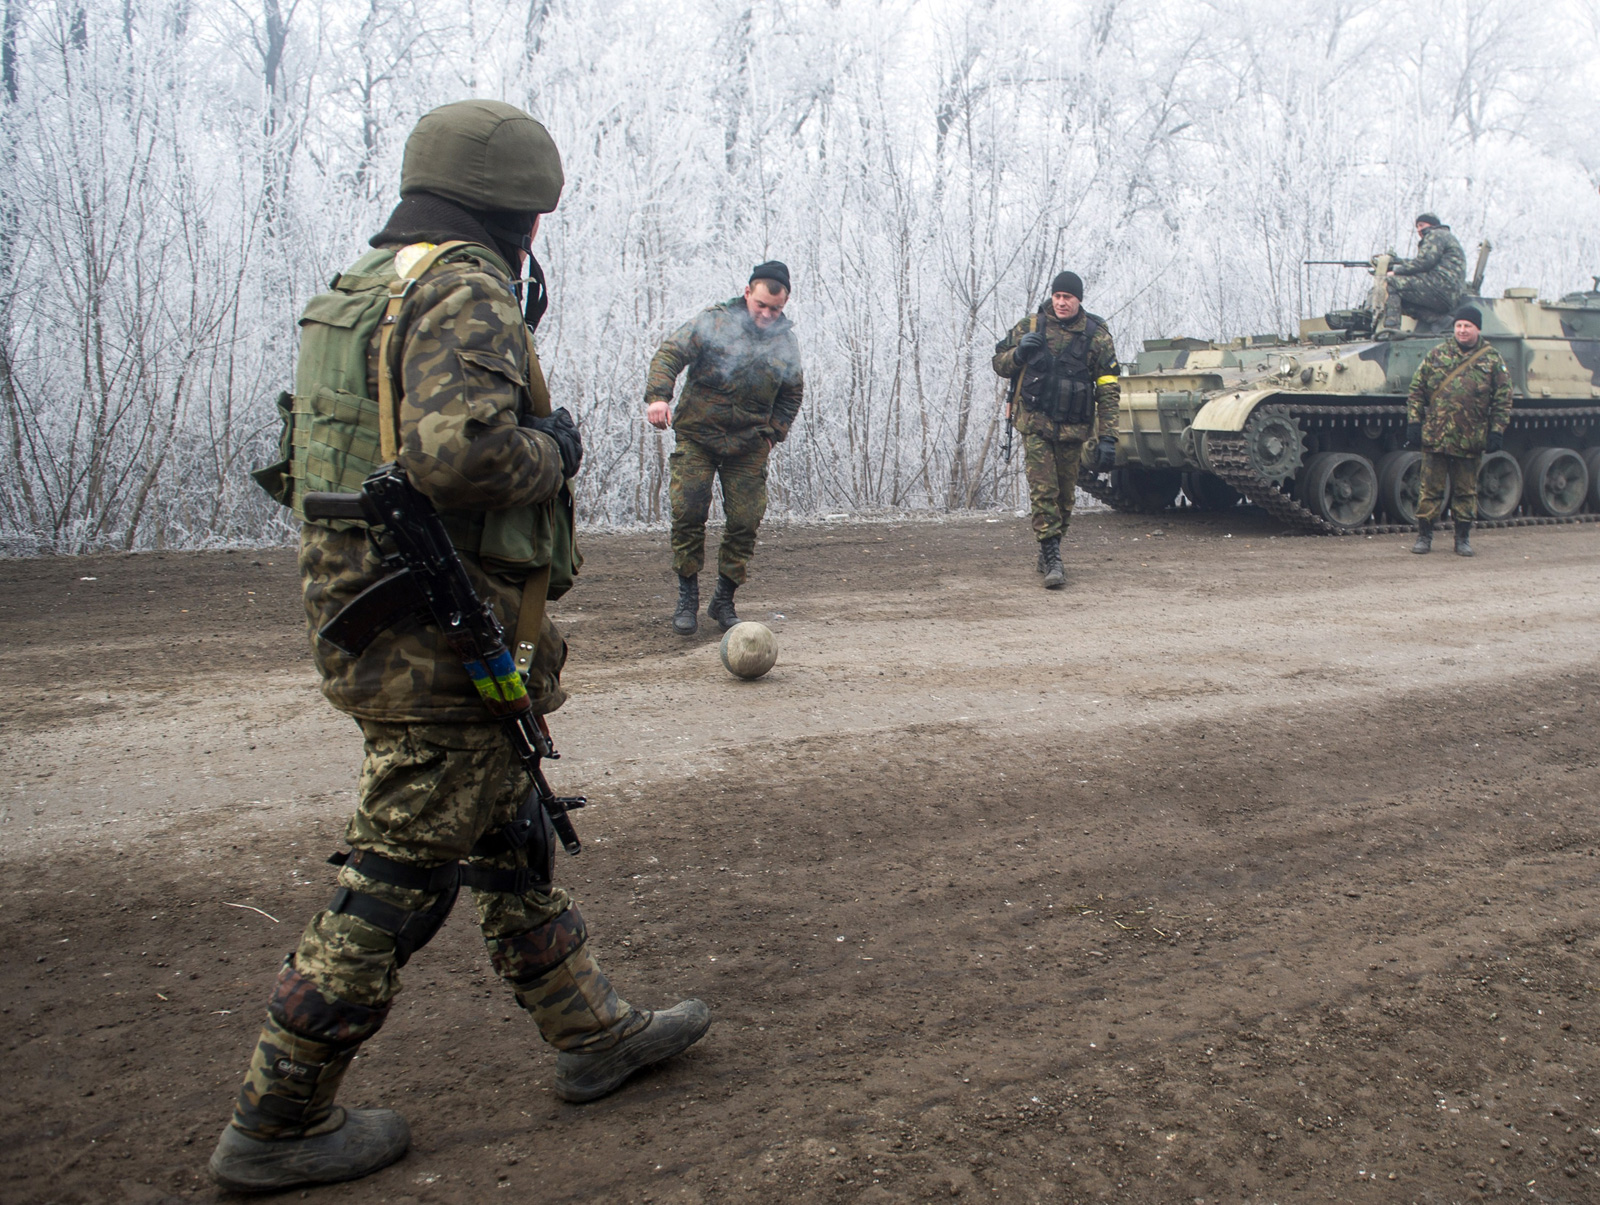 Ukrainian President Petro Poroshenko ordered troops to abide by the truce from midnight, in line with a deal reached in Minsk earlier this week with the leaders of Russia, Germany and France.